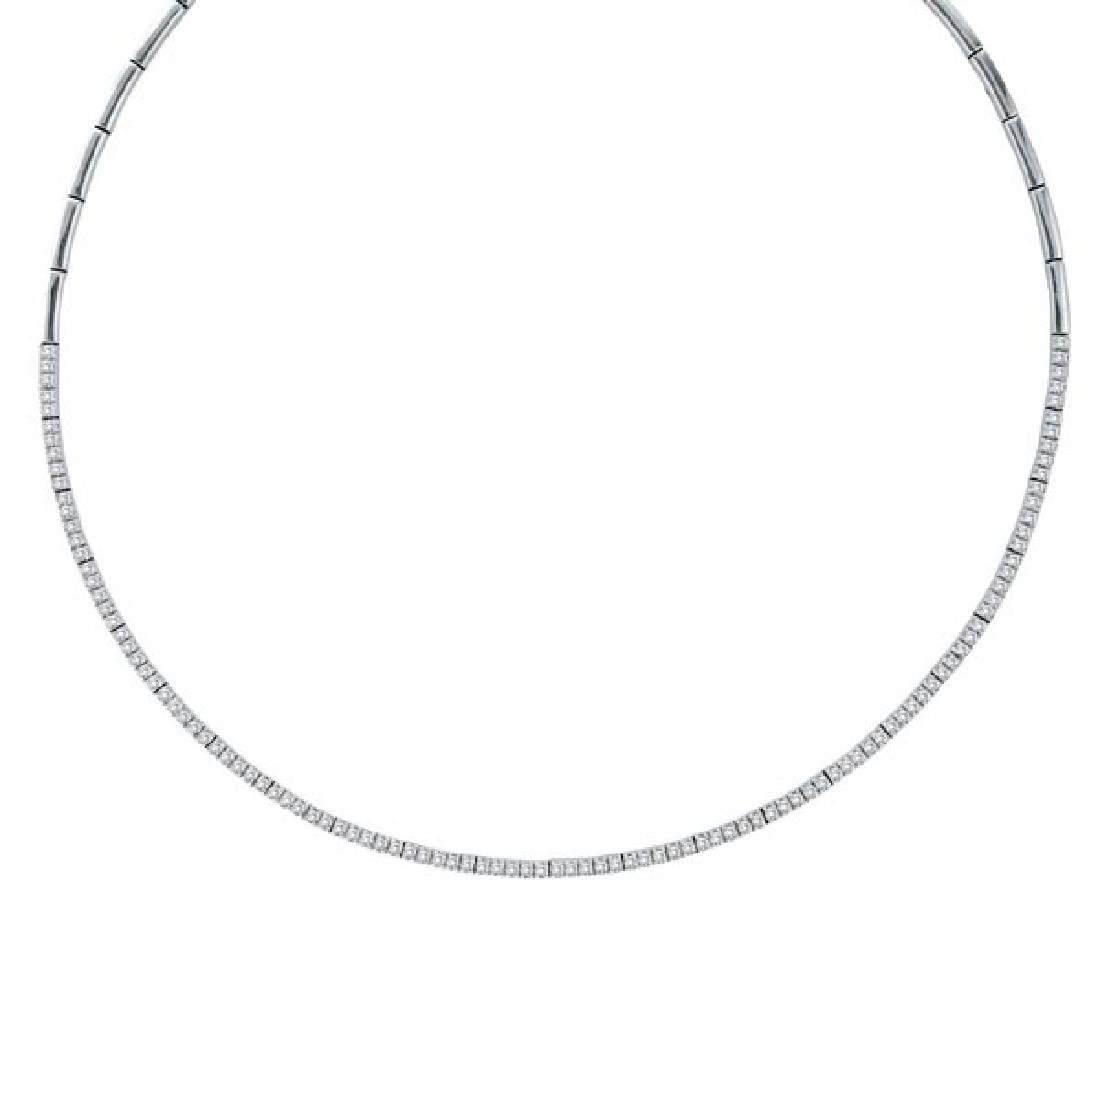 Diamond Tennis Choker Necklace in 14k White Gold (2.31c